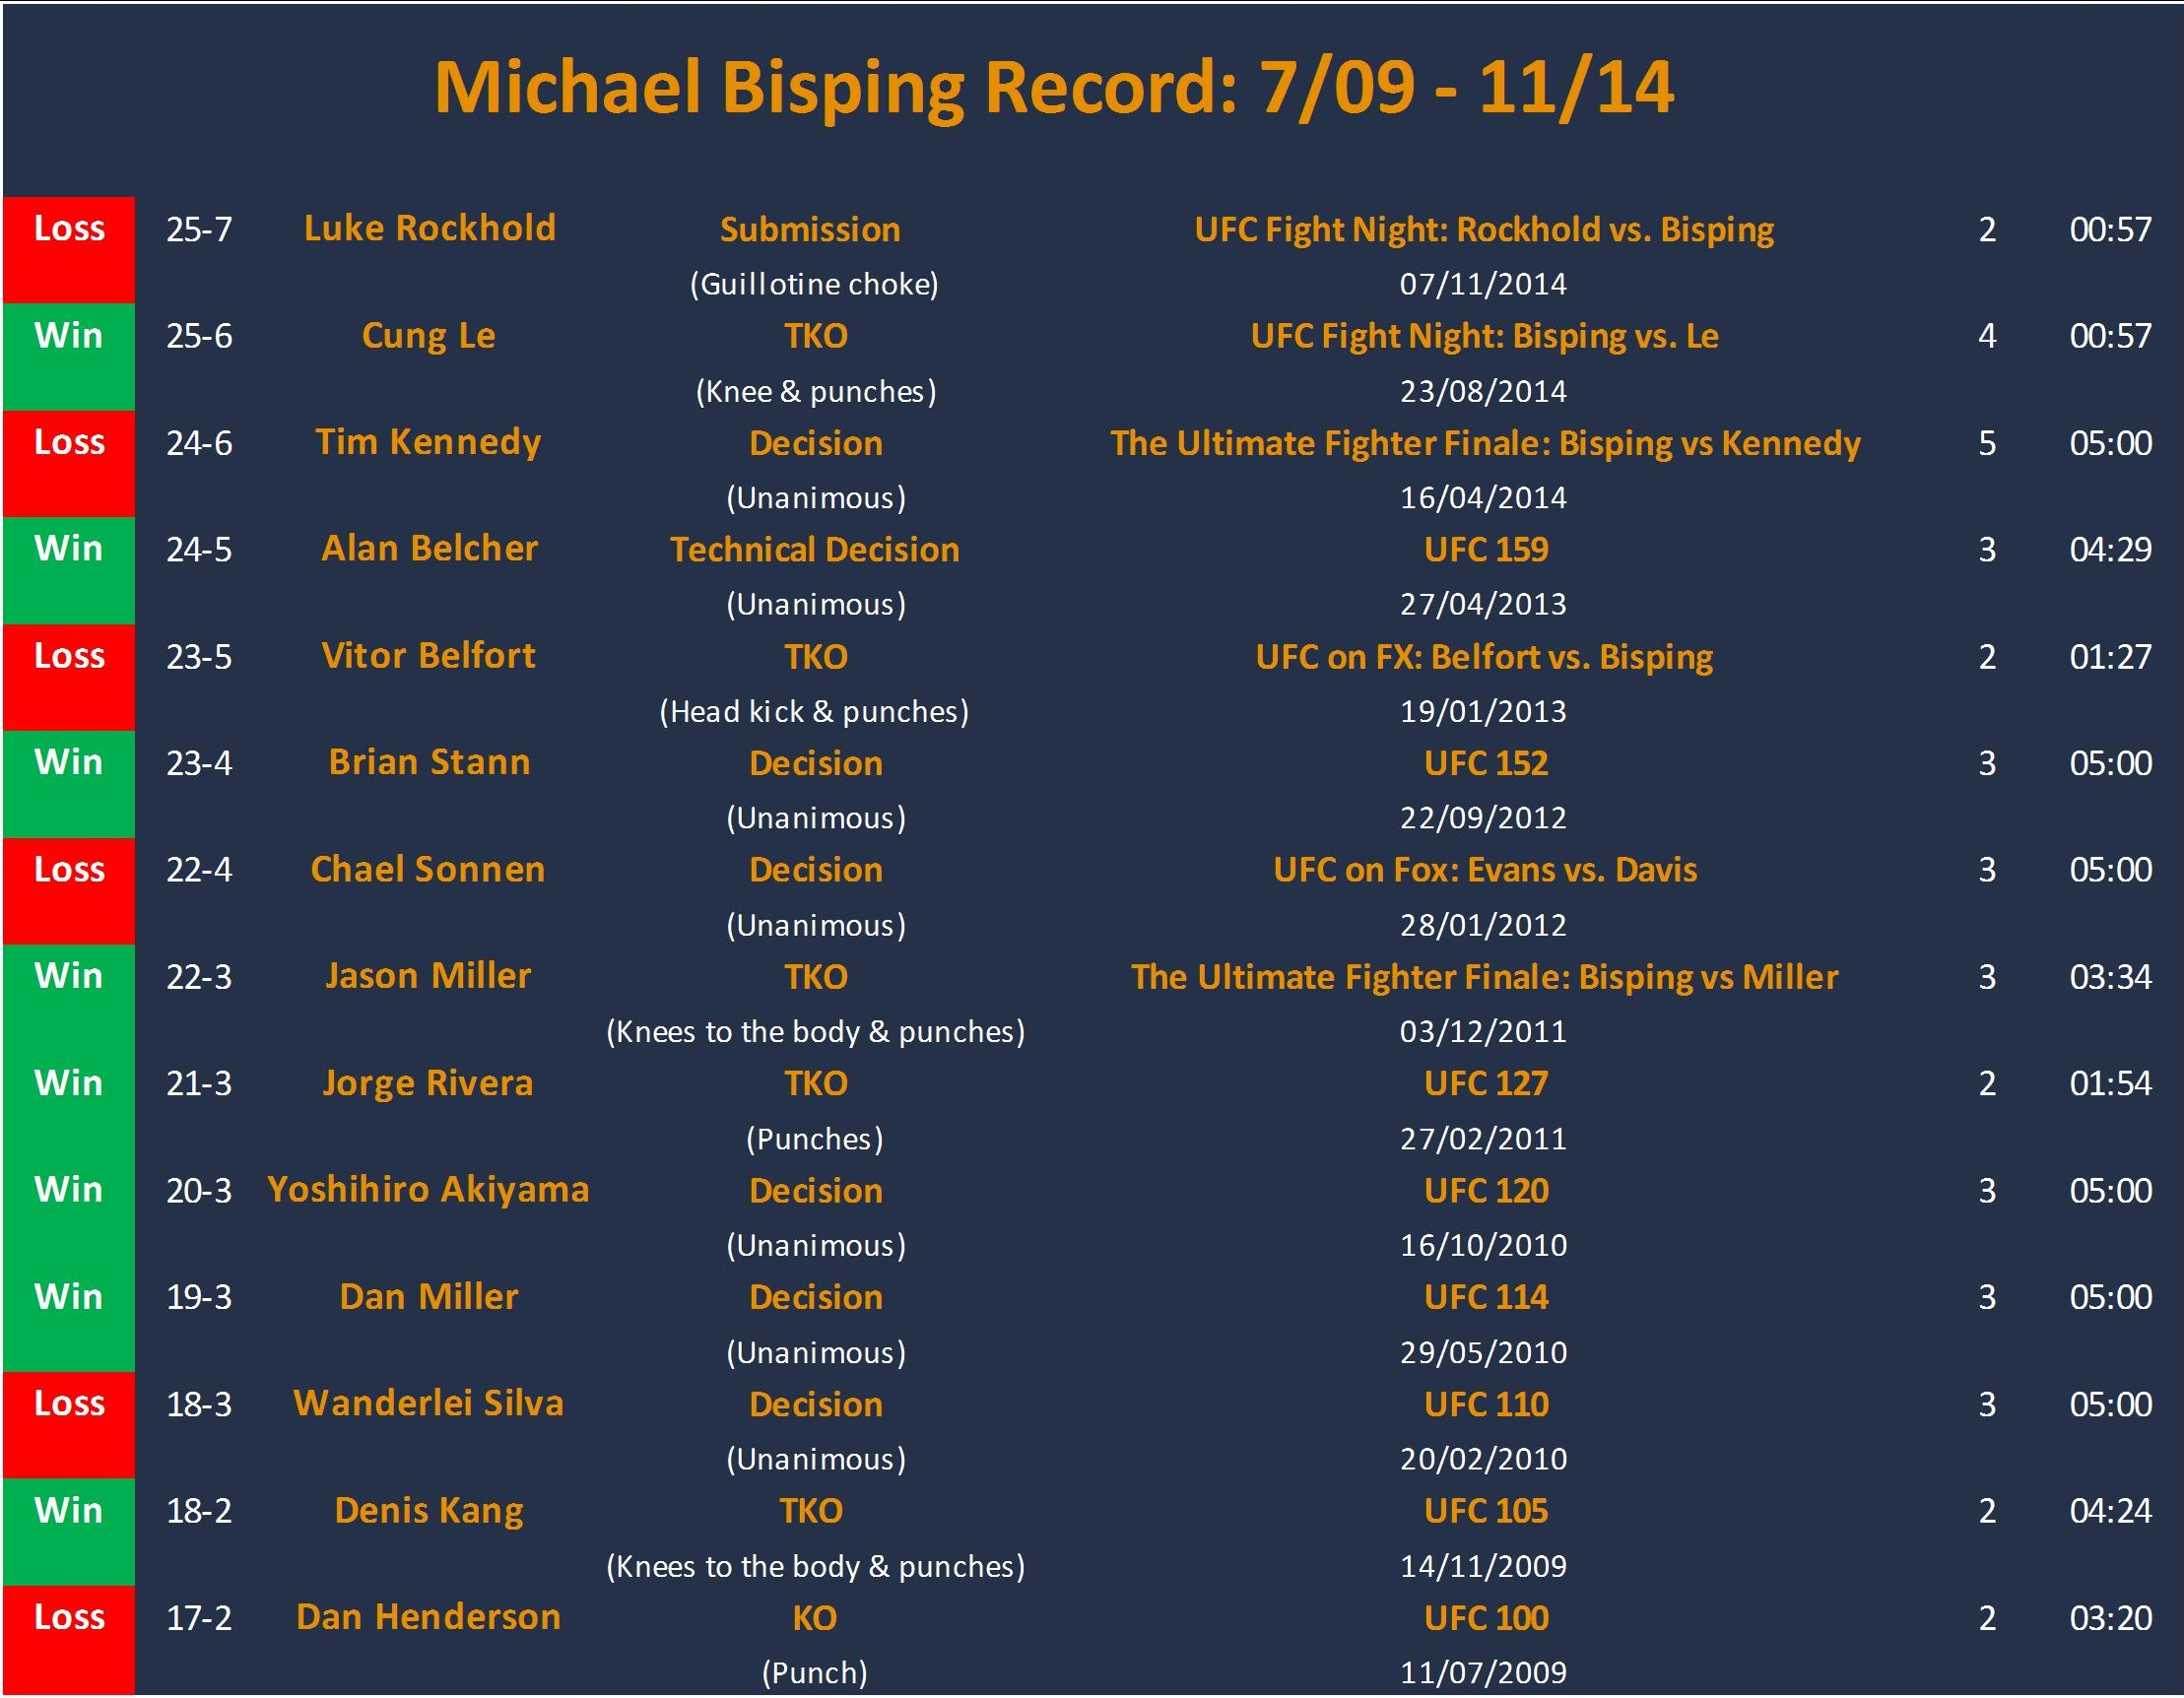 Michael Bisping record